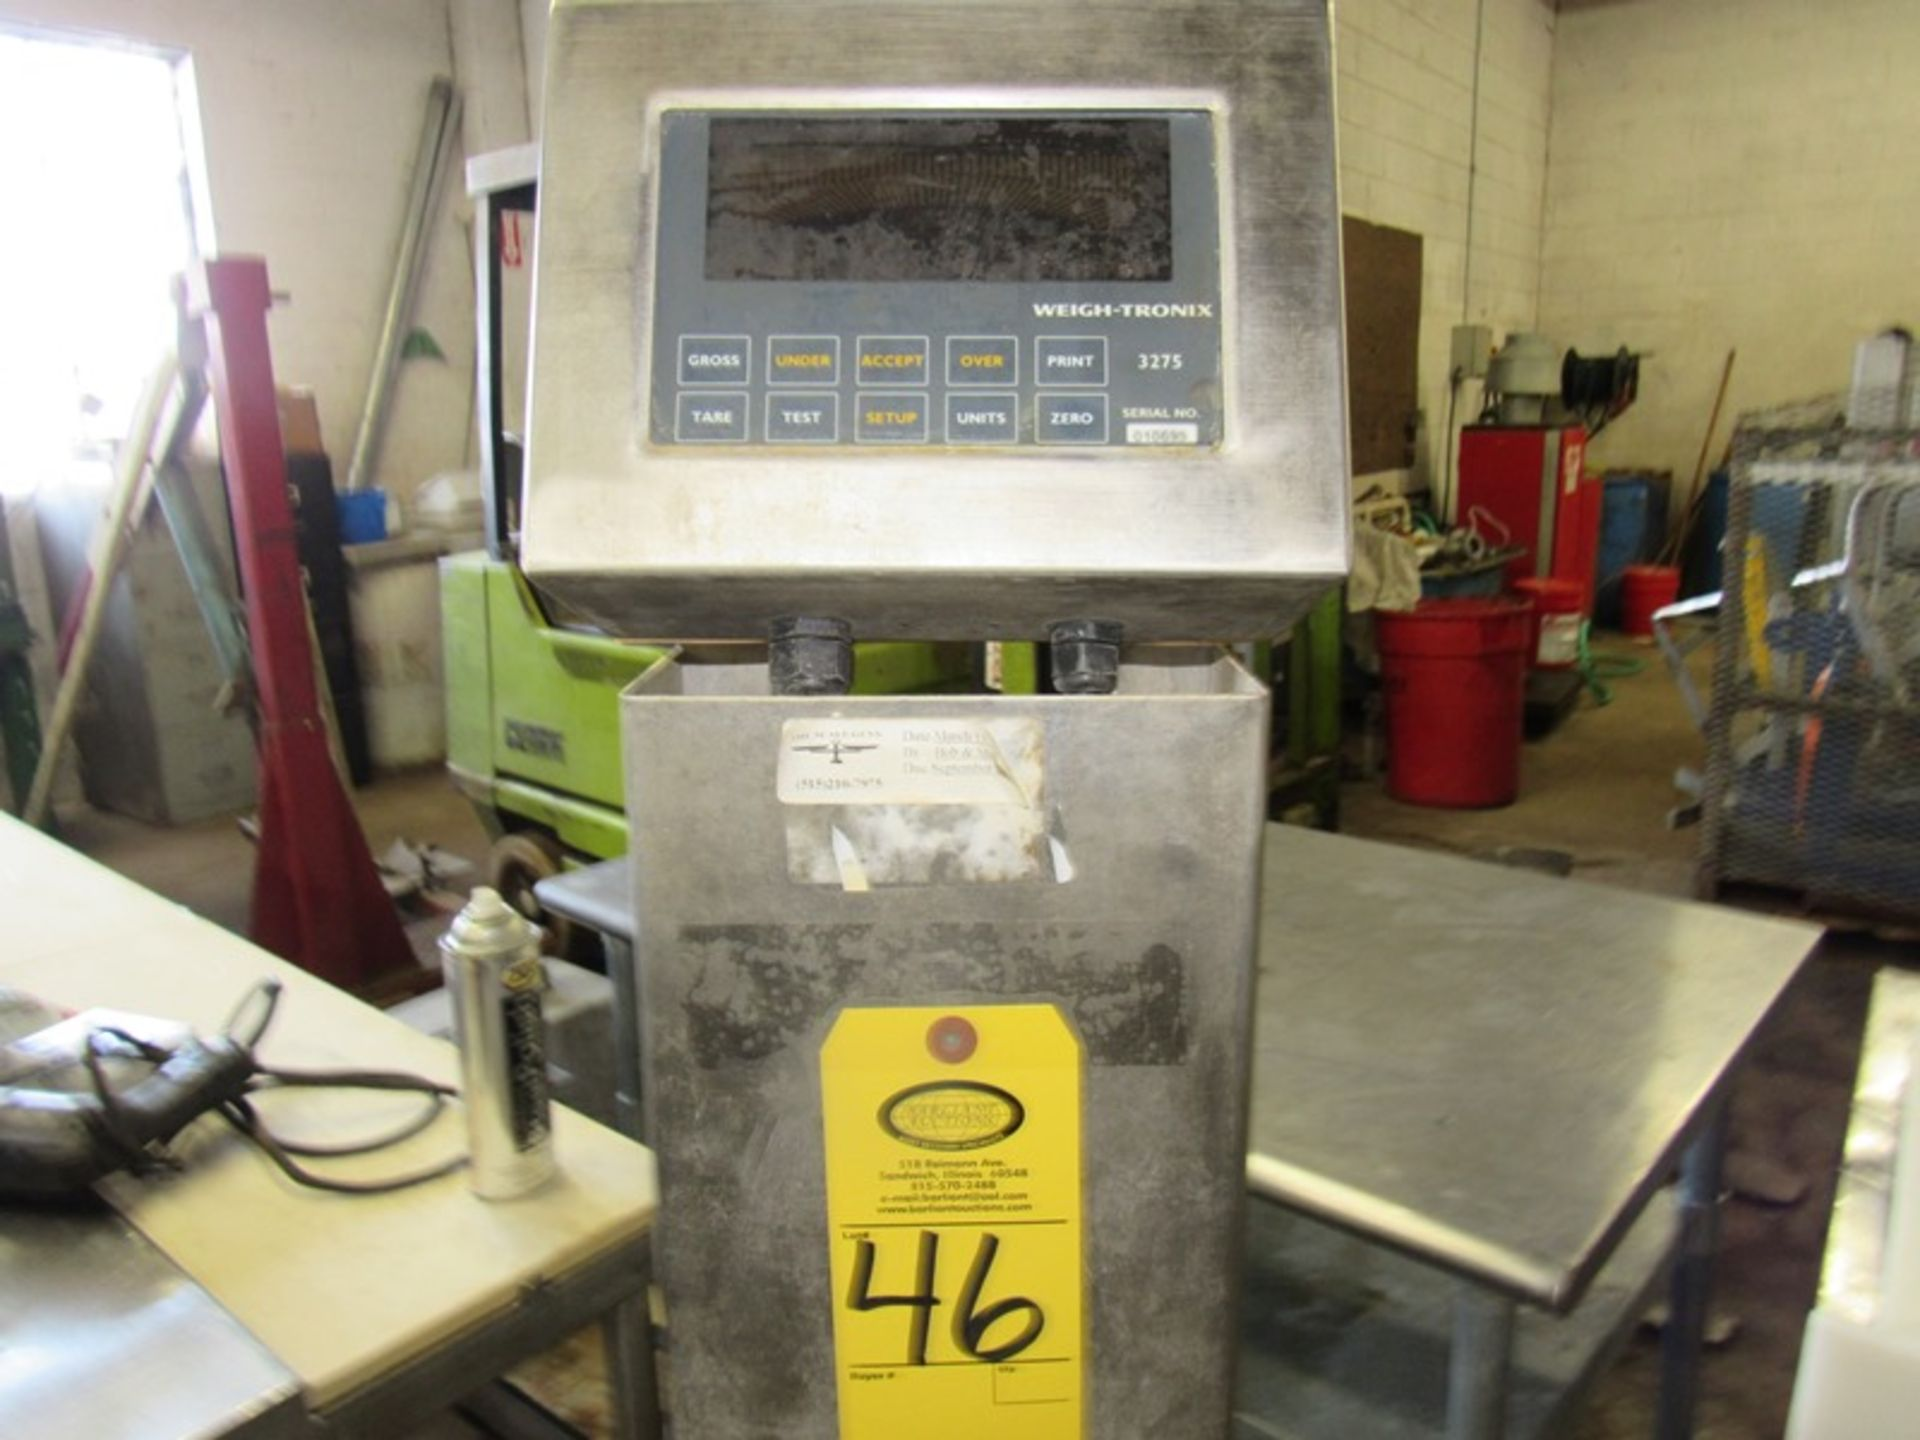 "Lot 46 - Weigh-Tronix Mdl. 3725 Digital Scale, 20"" X 20"" stainless steel platform on stand;*** All Funds Must"